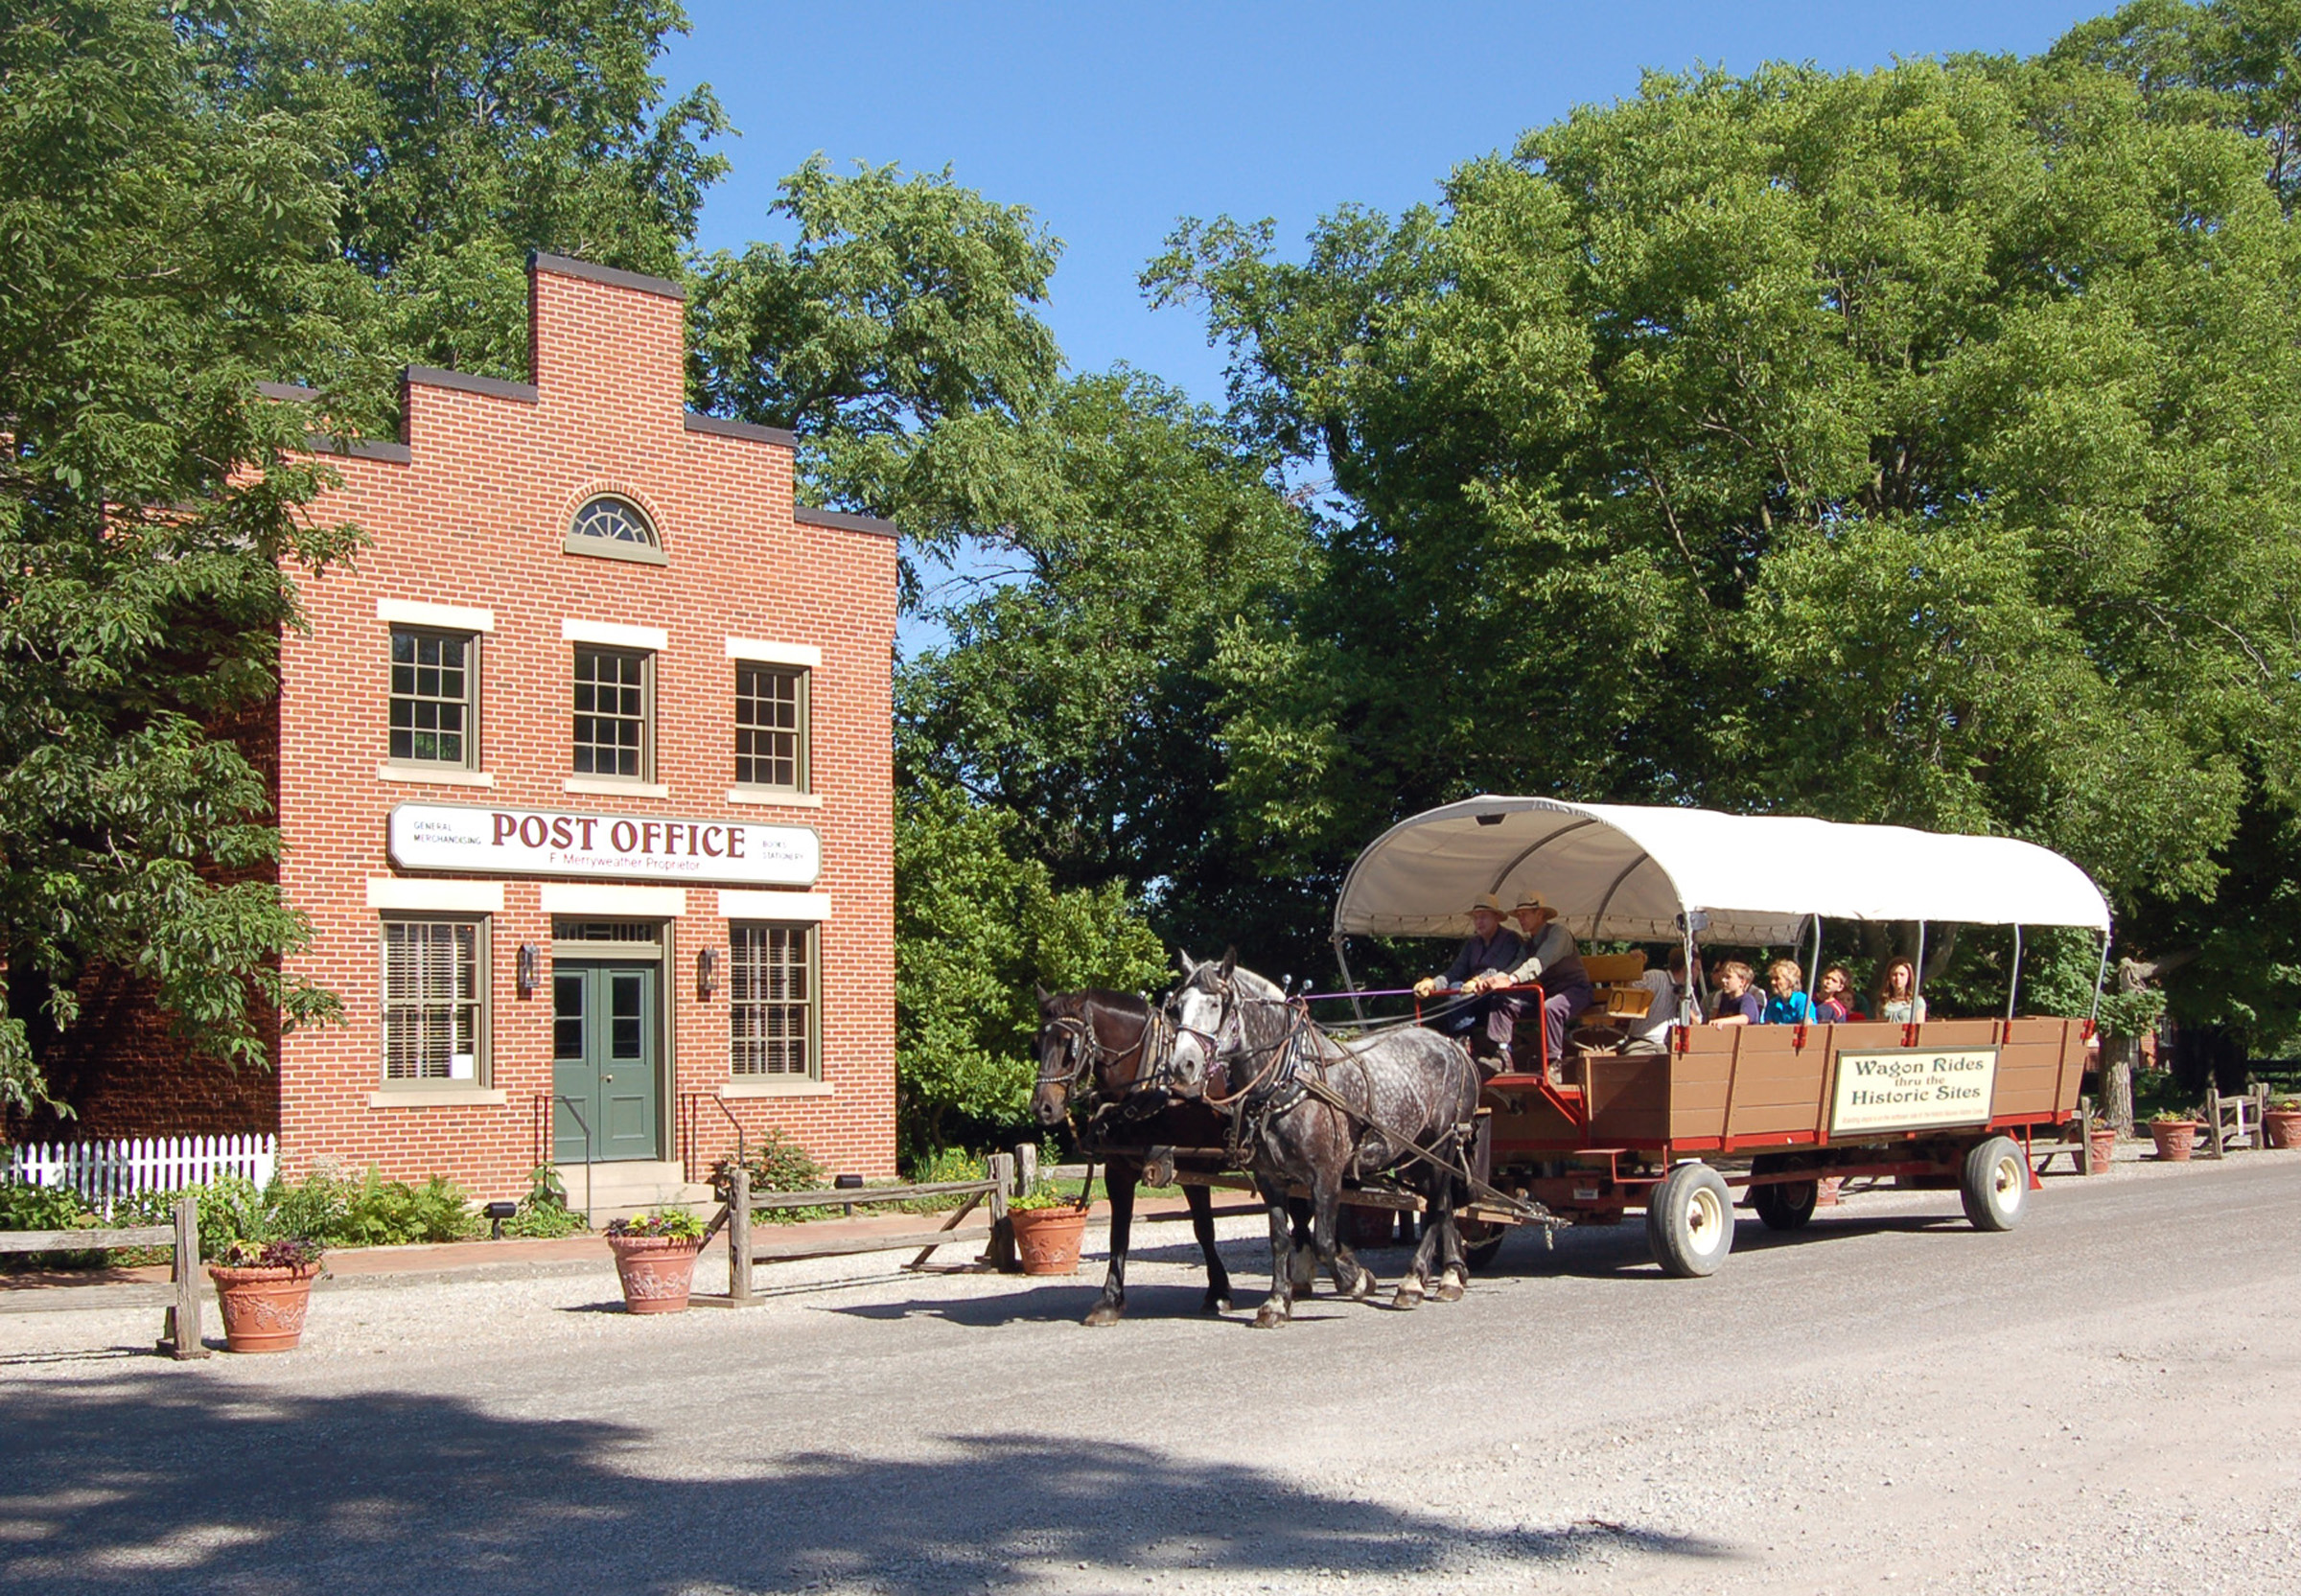 A group on a wagon ride goes past the post office in historic Nauvoo. Wagon rides are free in Nauvoo.